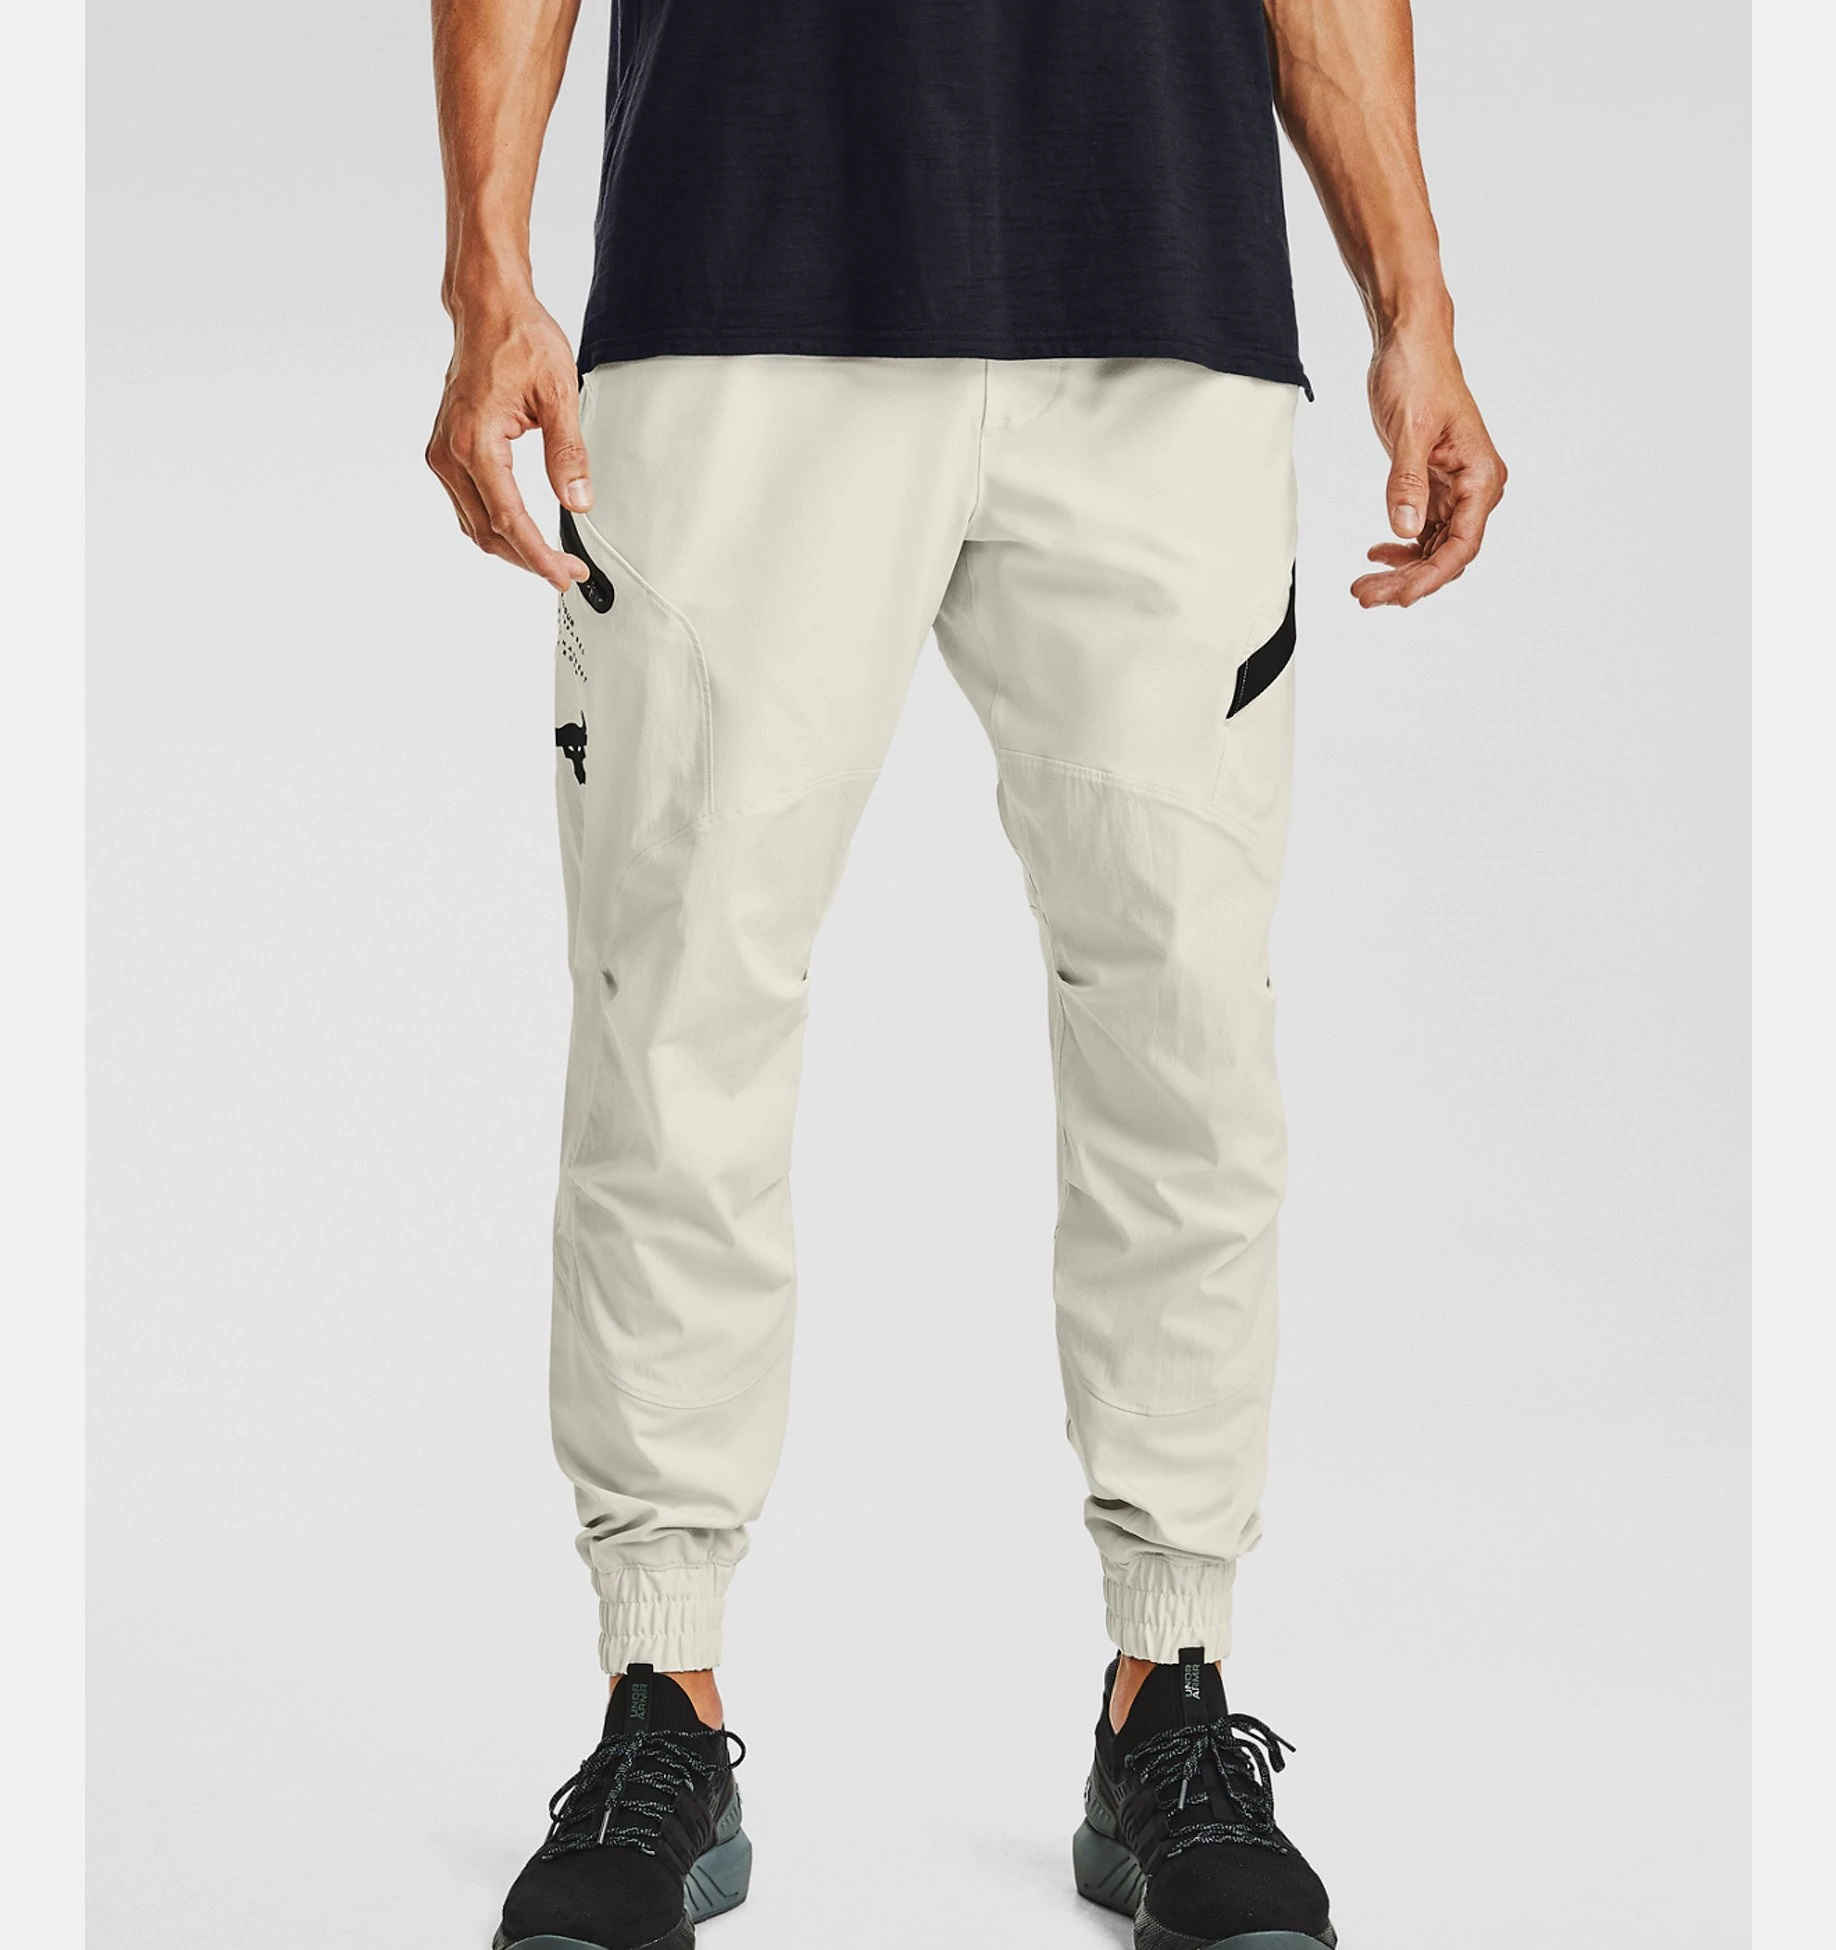 Under Armour アンダーアーマー Project Rock Unstoppable Pants プロジェクト ロック アンストッパブル パンツ メンズ 取り寄せ商品